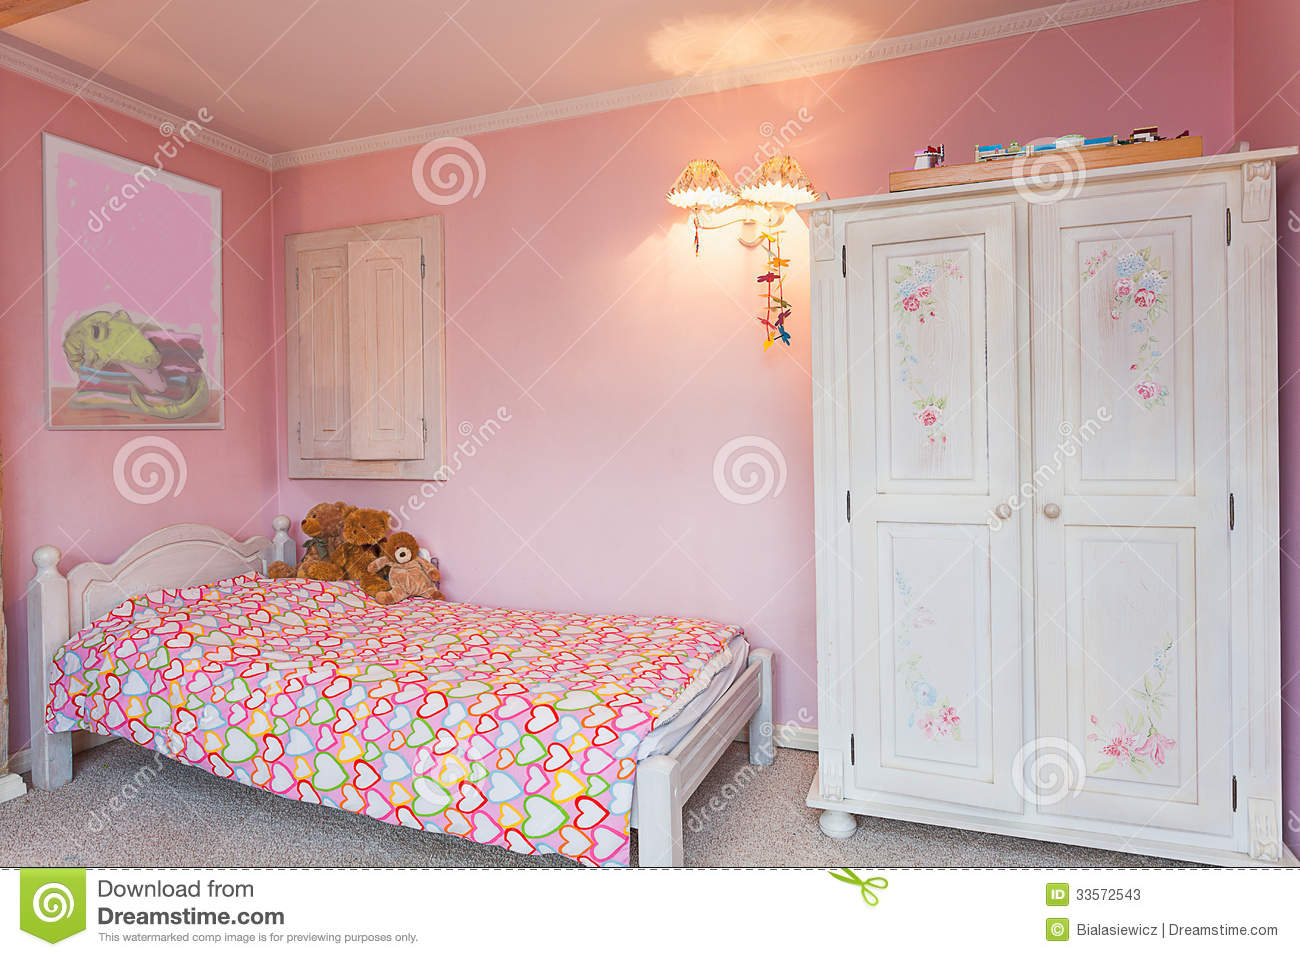 Vintage Mansion - Pink Bedroom Stock Image - Image of cute ...